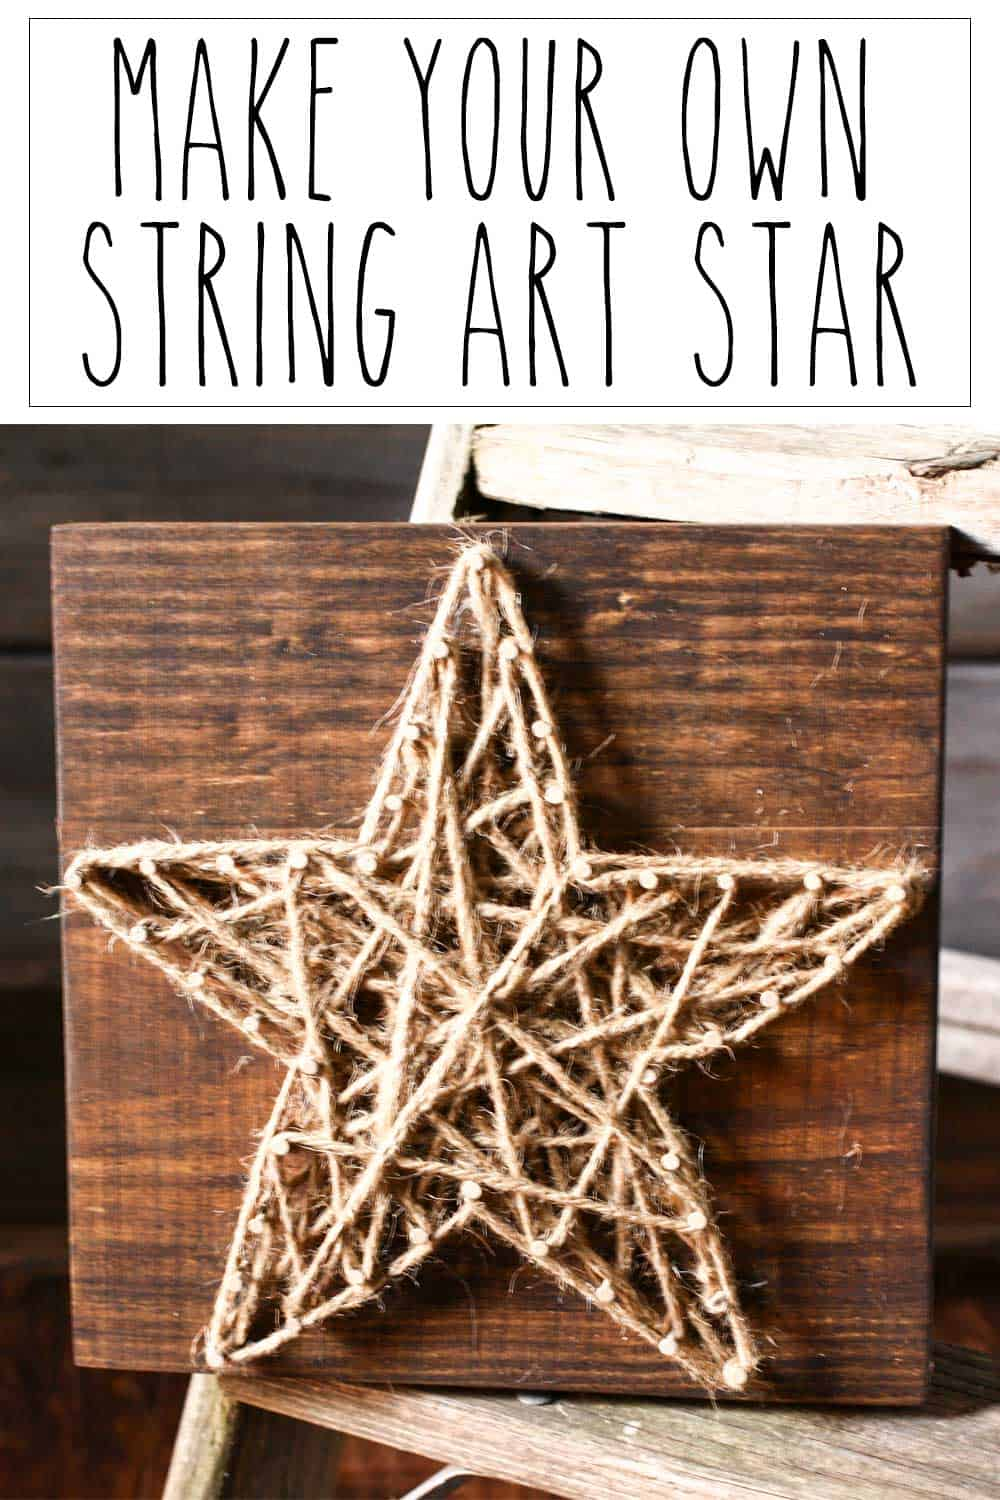 string art - jute and nails on wood to make a star